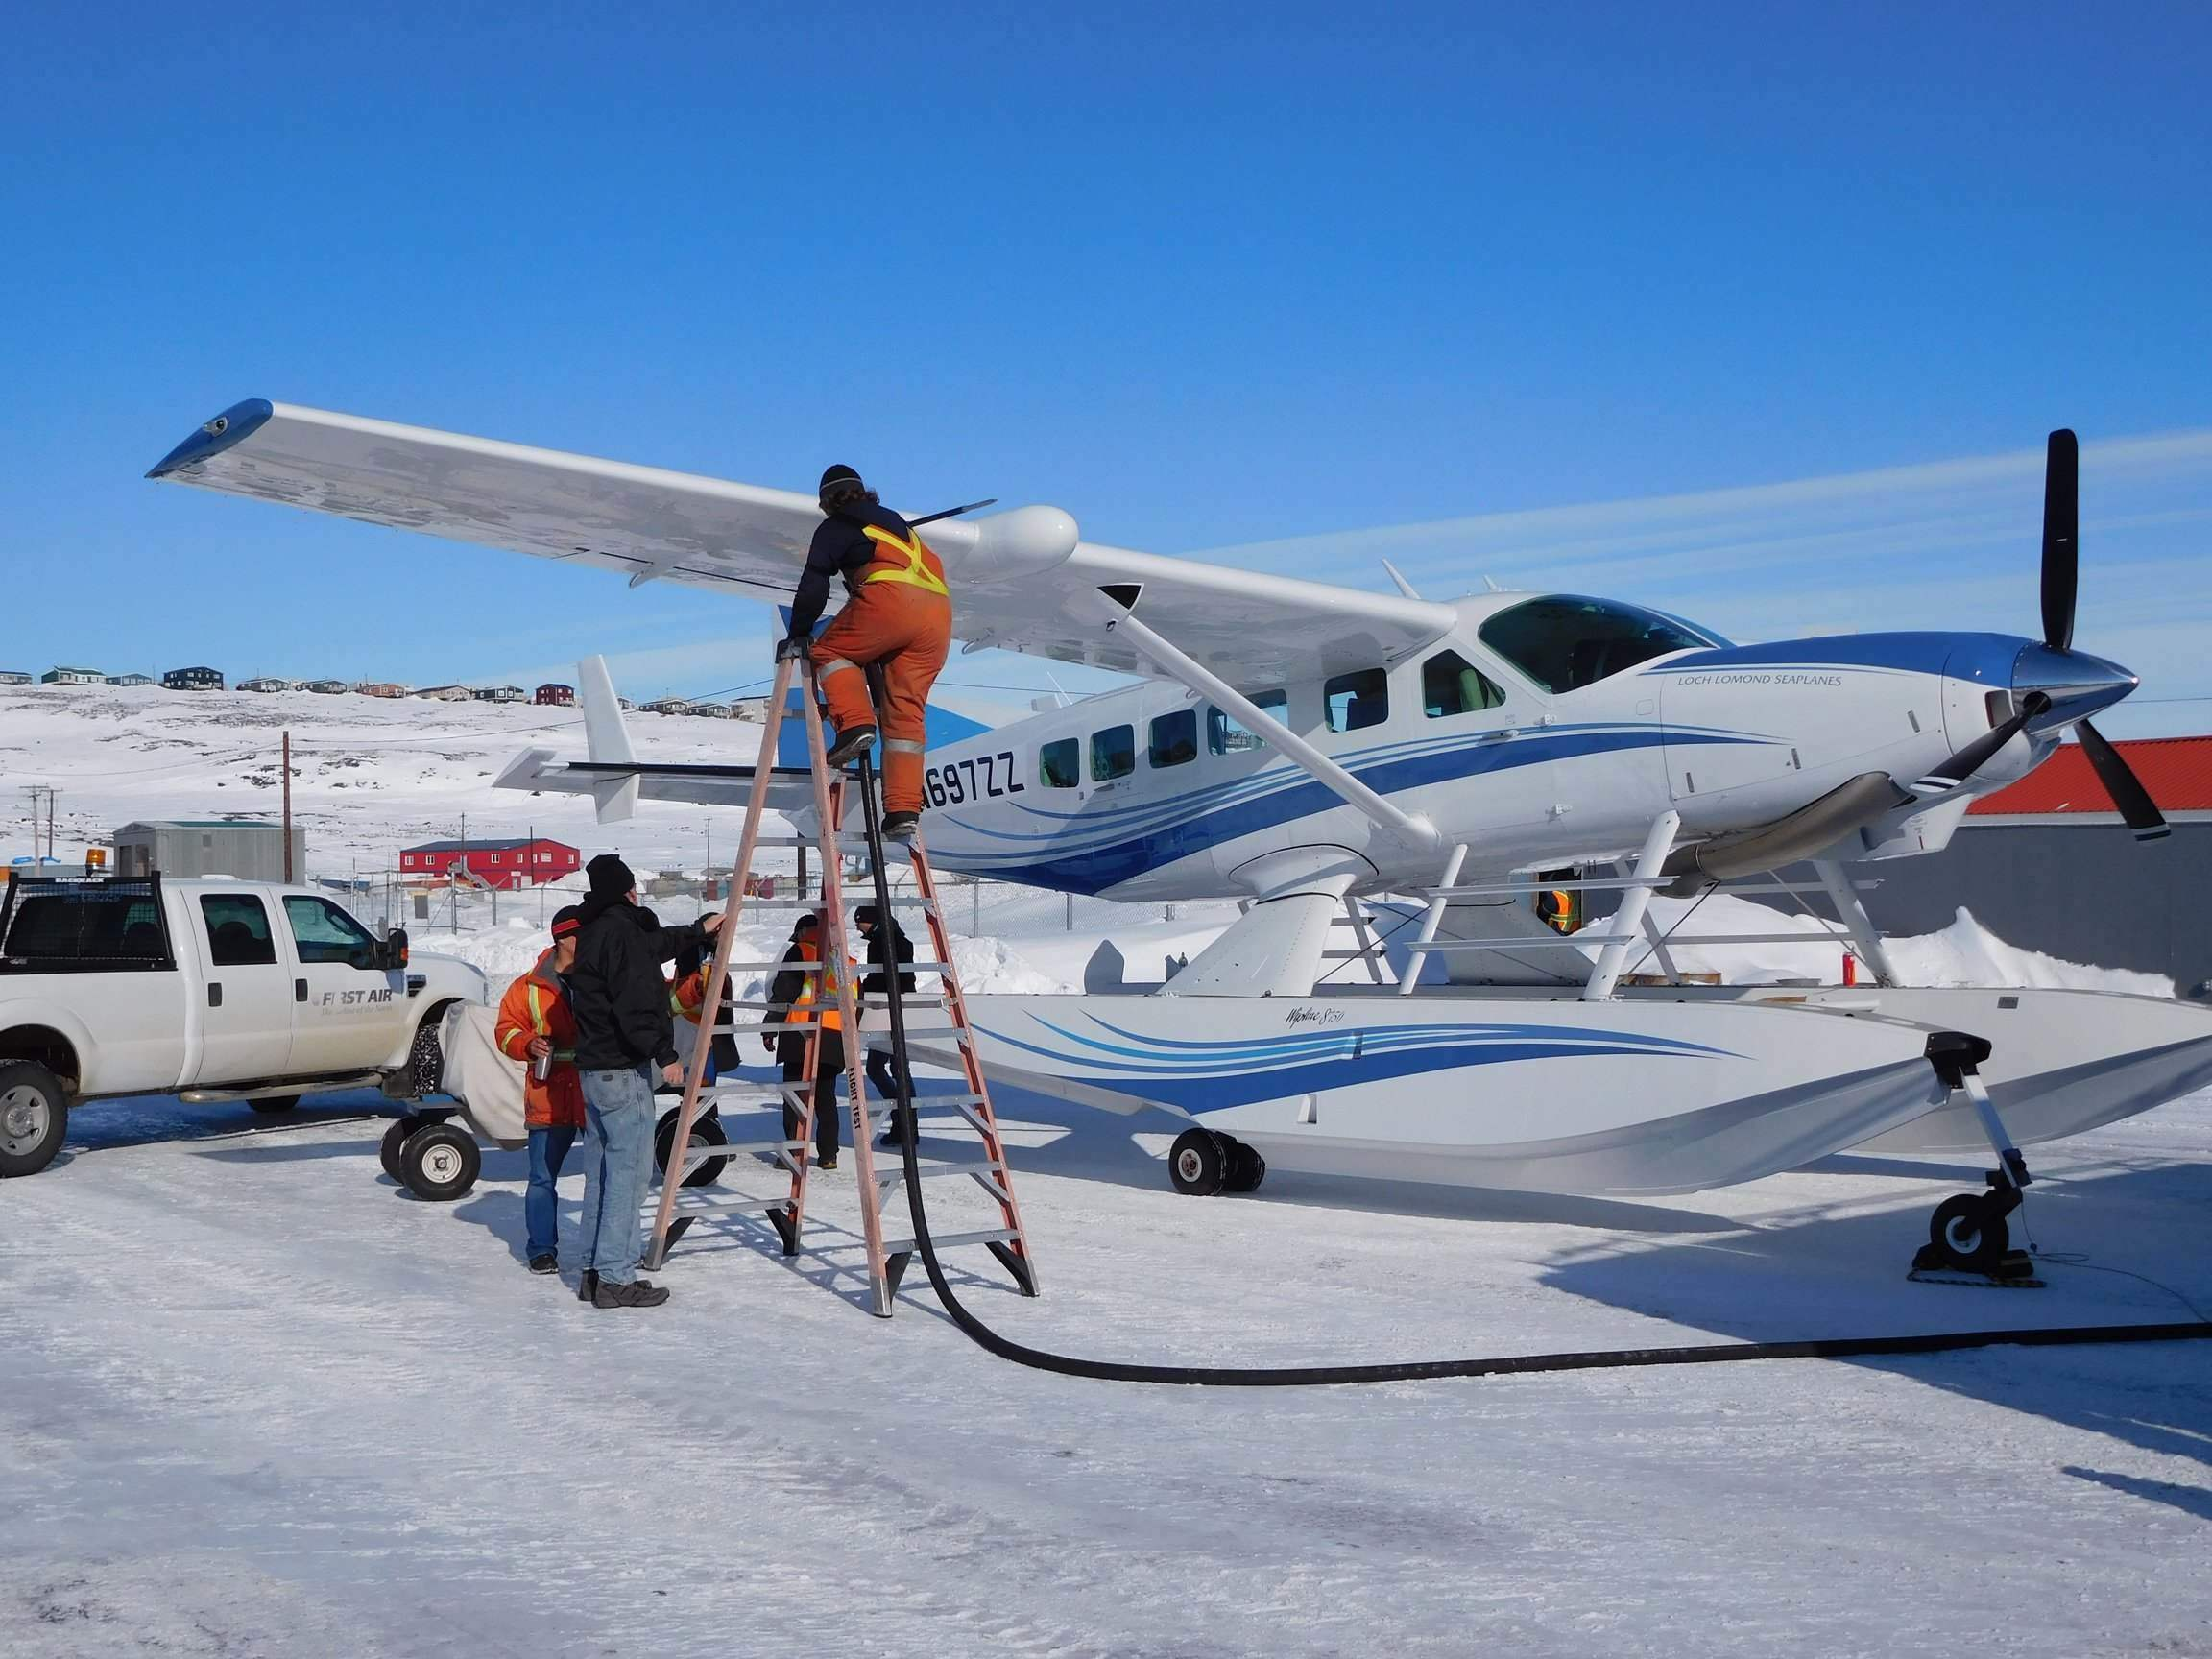 Topping up the fuel and oxygen at minus 18C